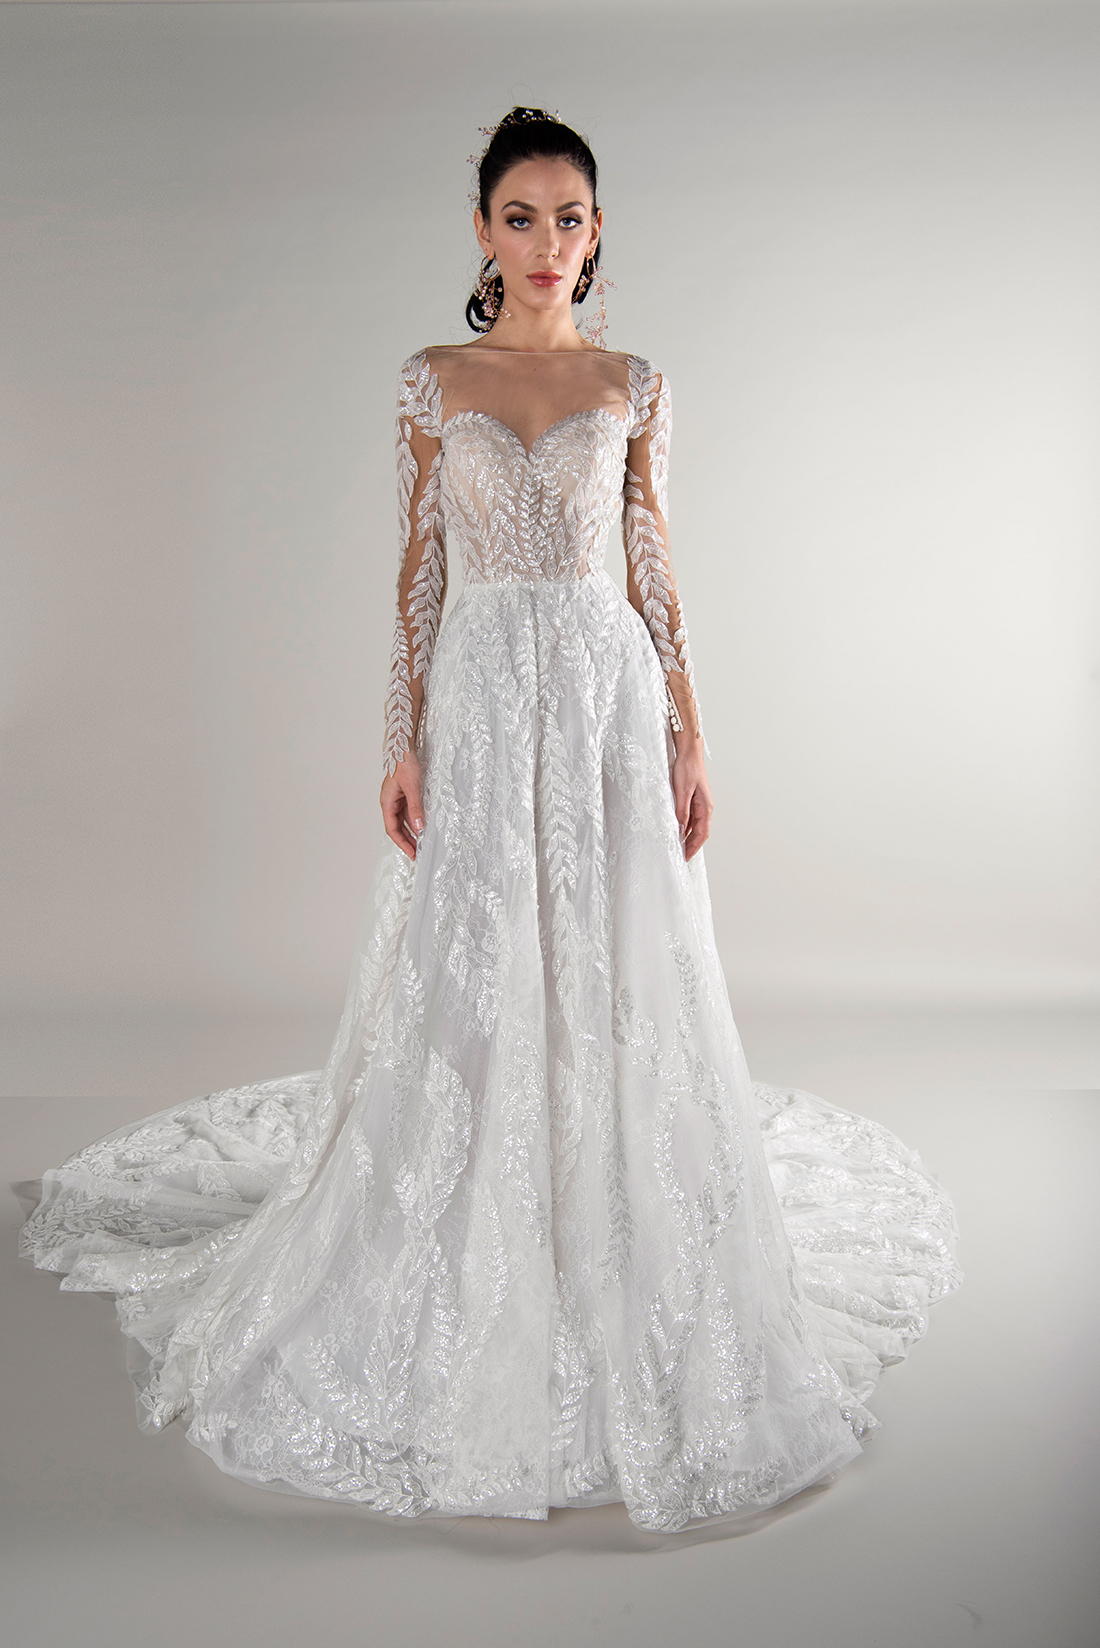 Yumi Katsura Fall 2019 Wedding Dress Collection Martha Stewart